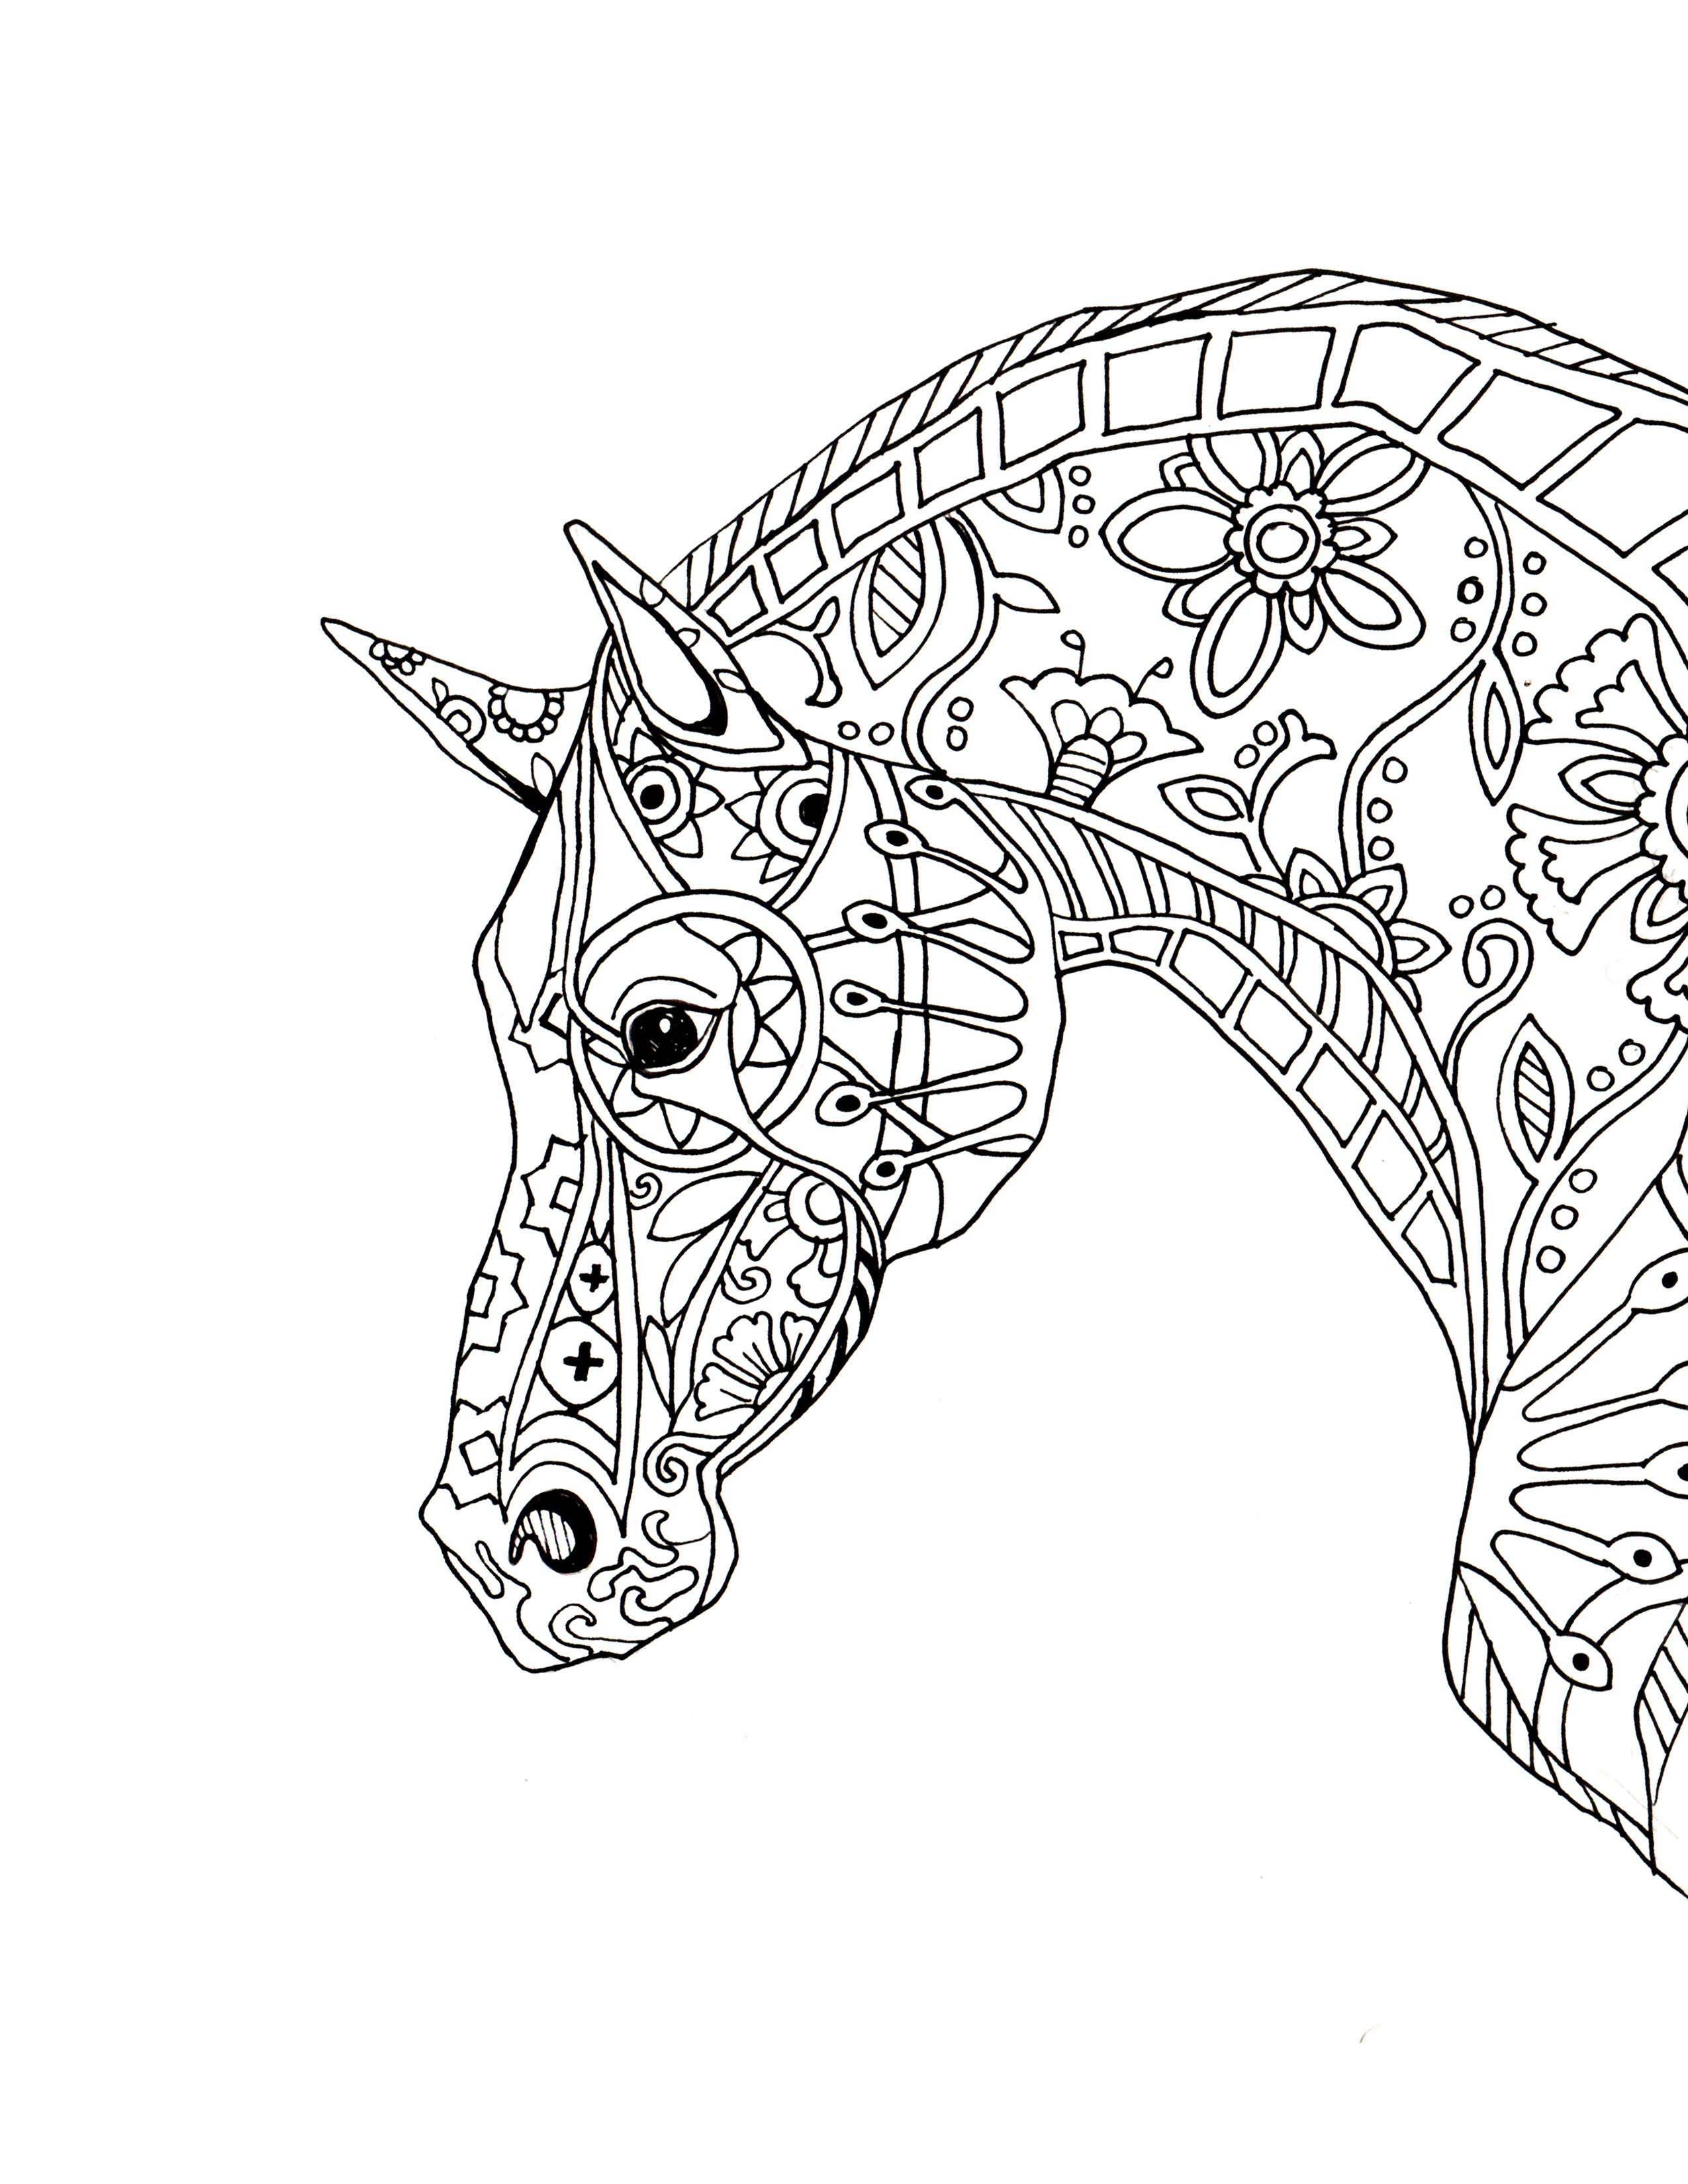 Decorative Horse Profile For Print JPEG Image 2550